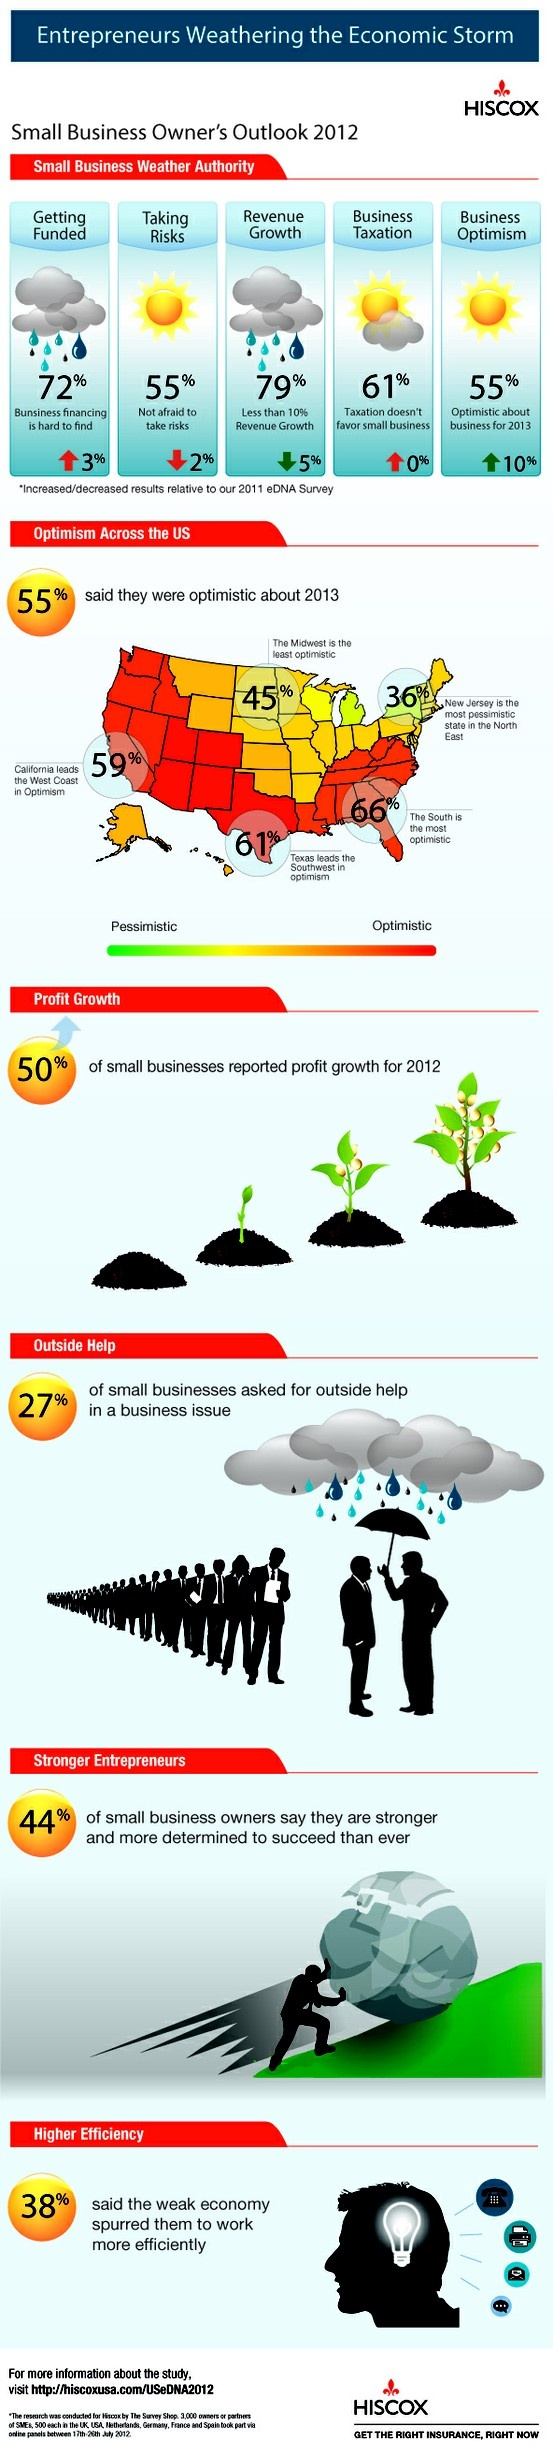 Although U.S. small business owners are generally